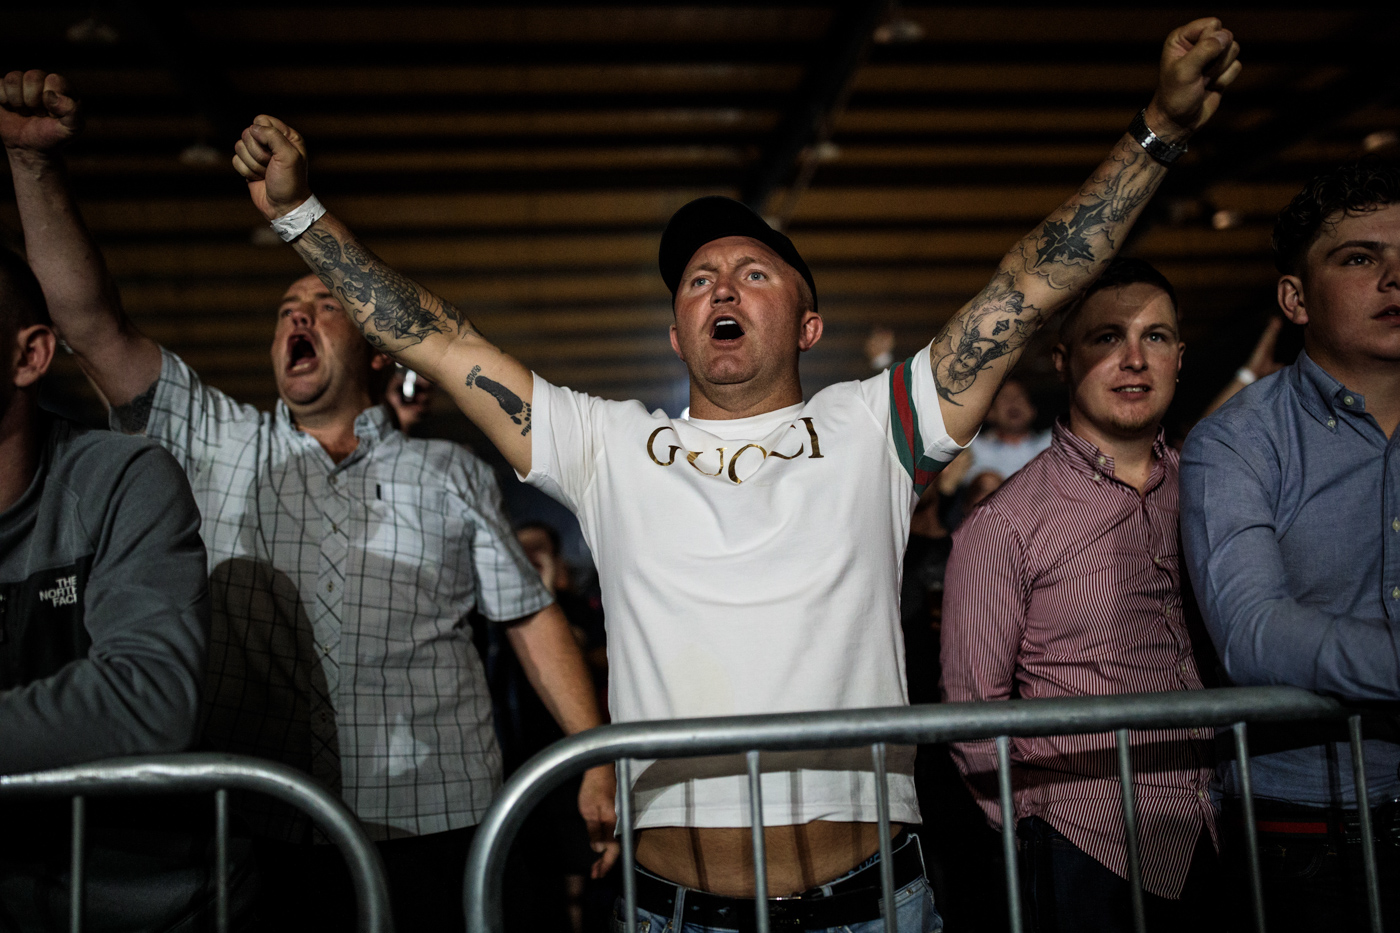 MANCHESTER, ENGLAND: The audience cheer during an Ultimate Bare Knuckle Boxing (UBKB) event at Bowlers Exhibition Centre on August 4, 2018.